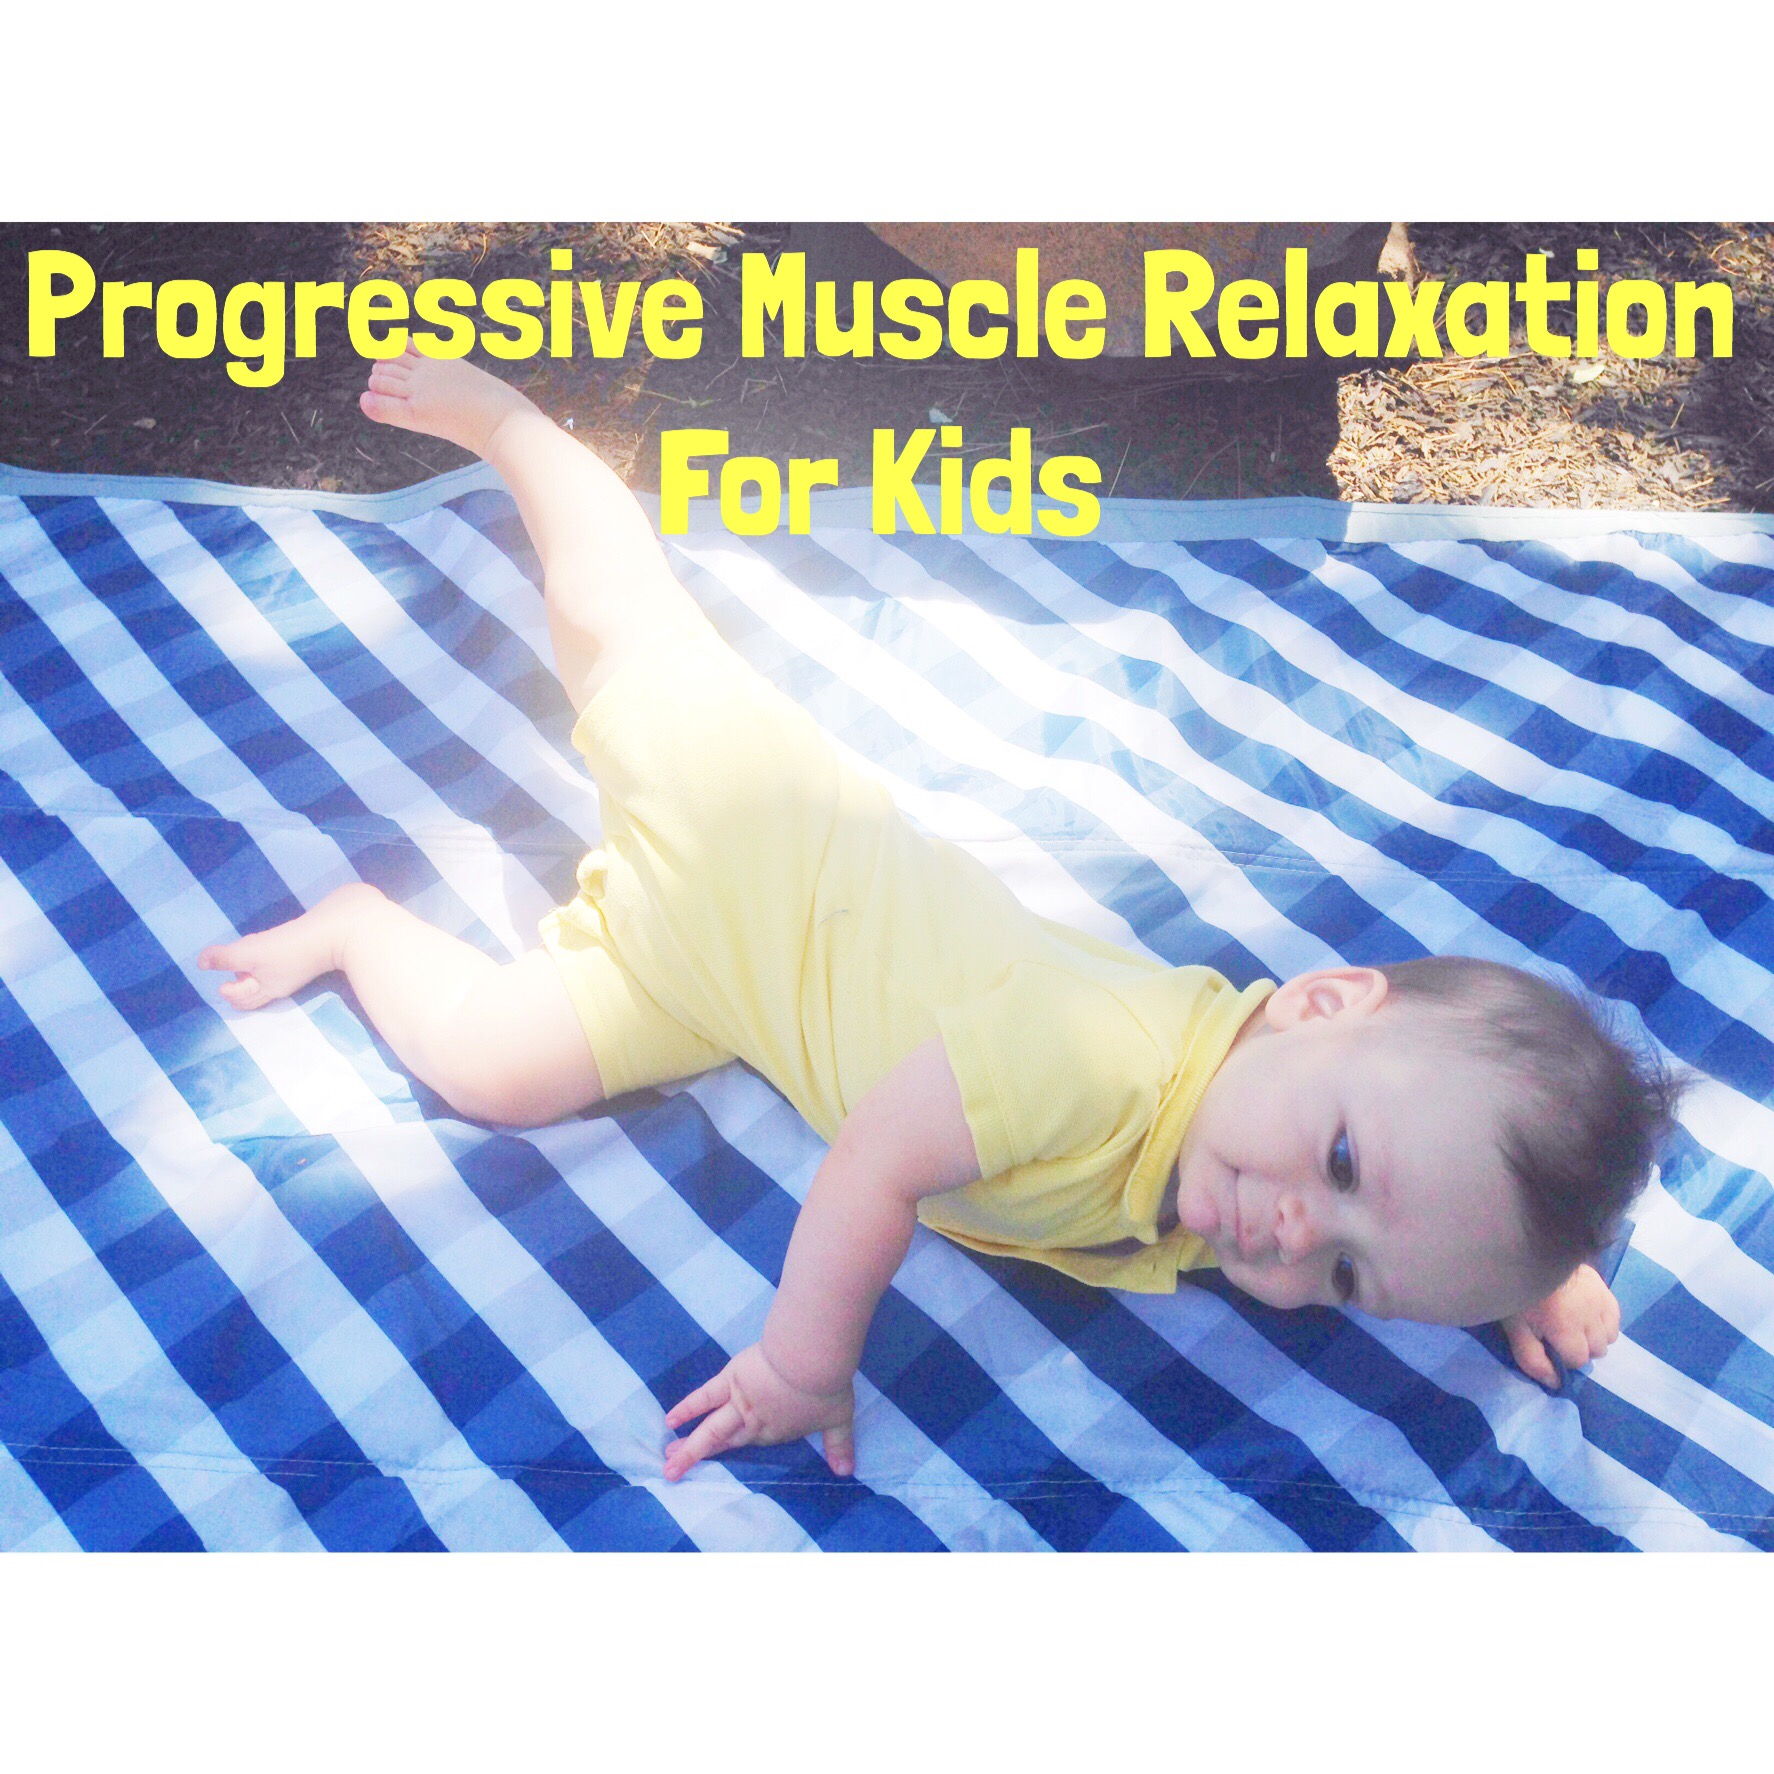 Progressive Muscle Relaxation For Kids Part 2